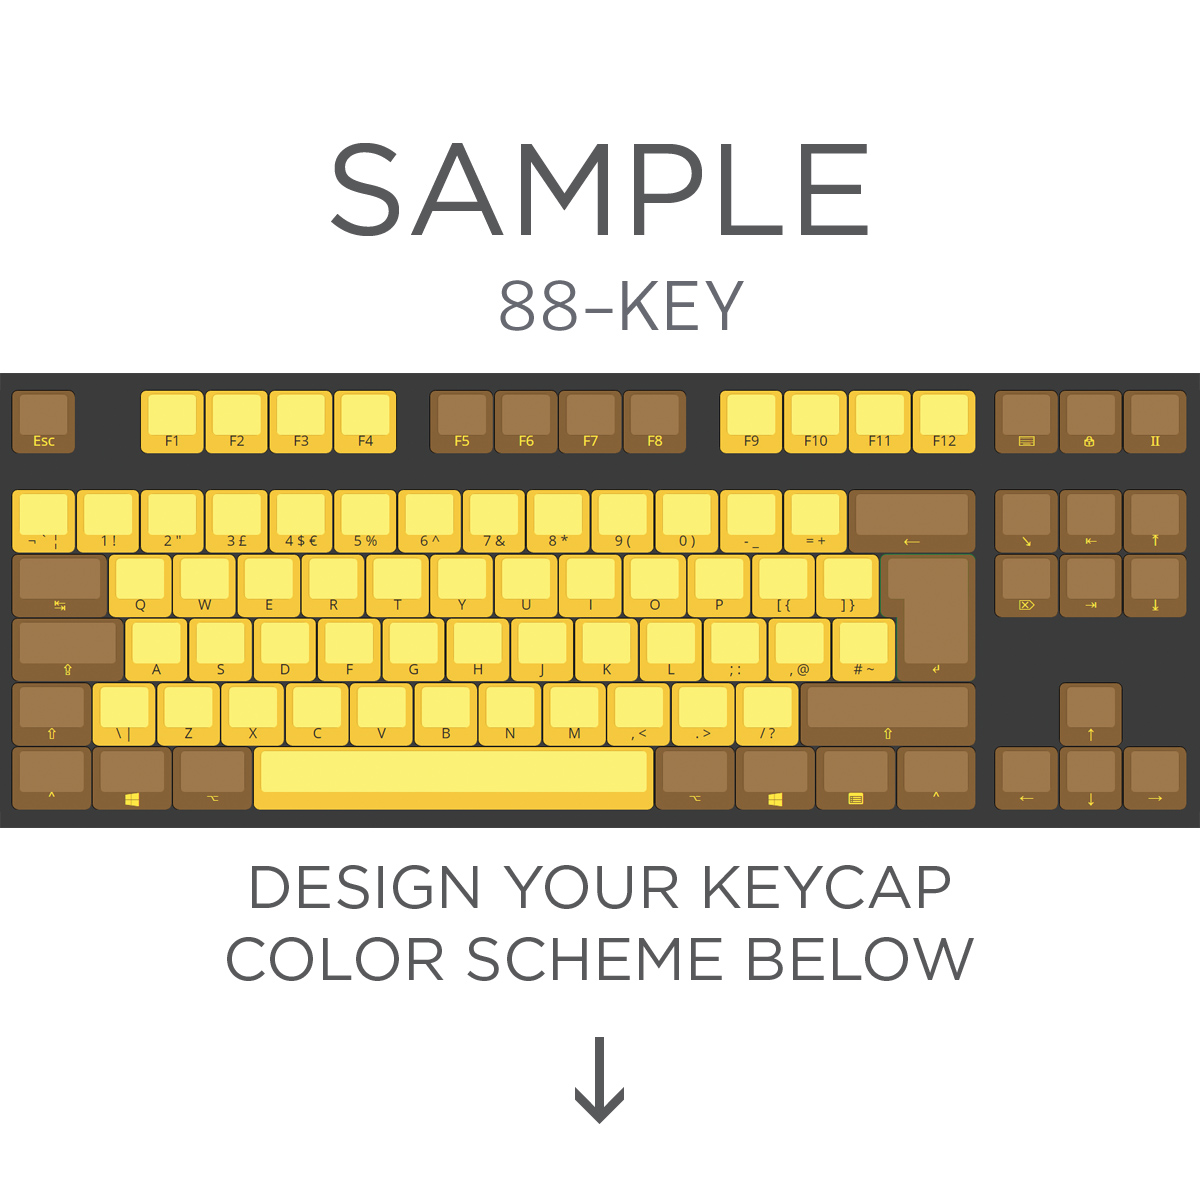 Max keyboard iso layout custom color cherry mx keycap set front max keyboard iso 87 key layout custom color cherry mx full replacement keycap set nvjuhfo Image collections